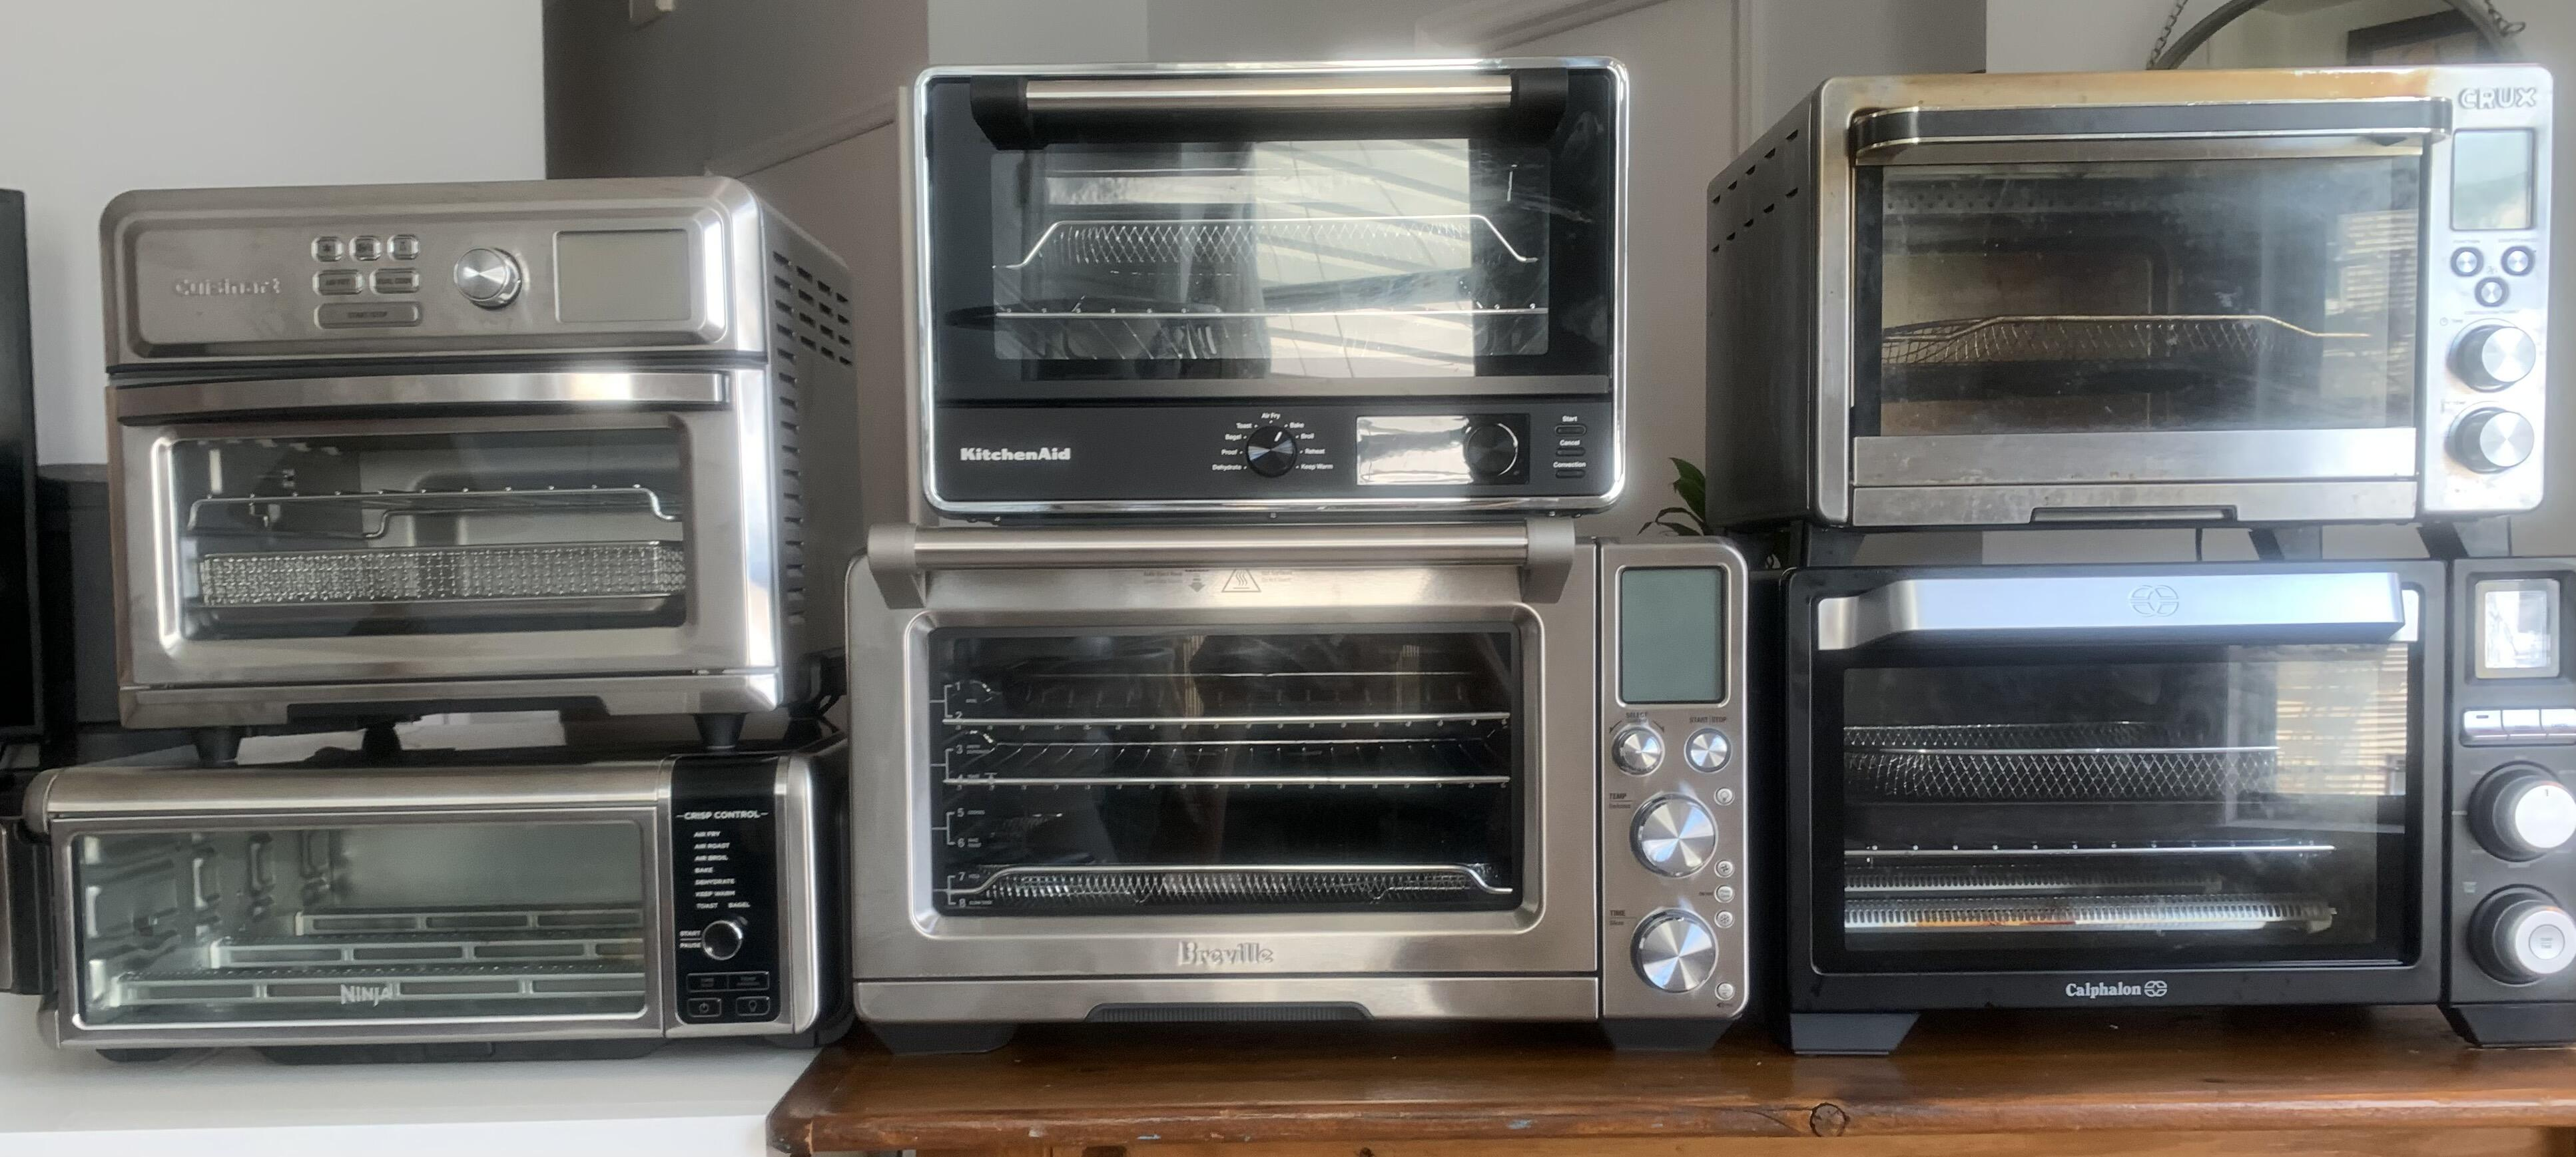 ovens-air-fryer-convection